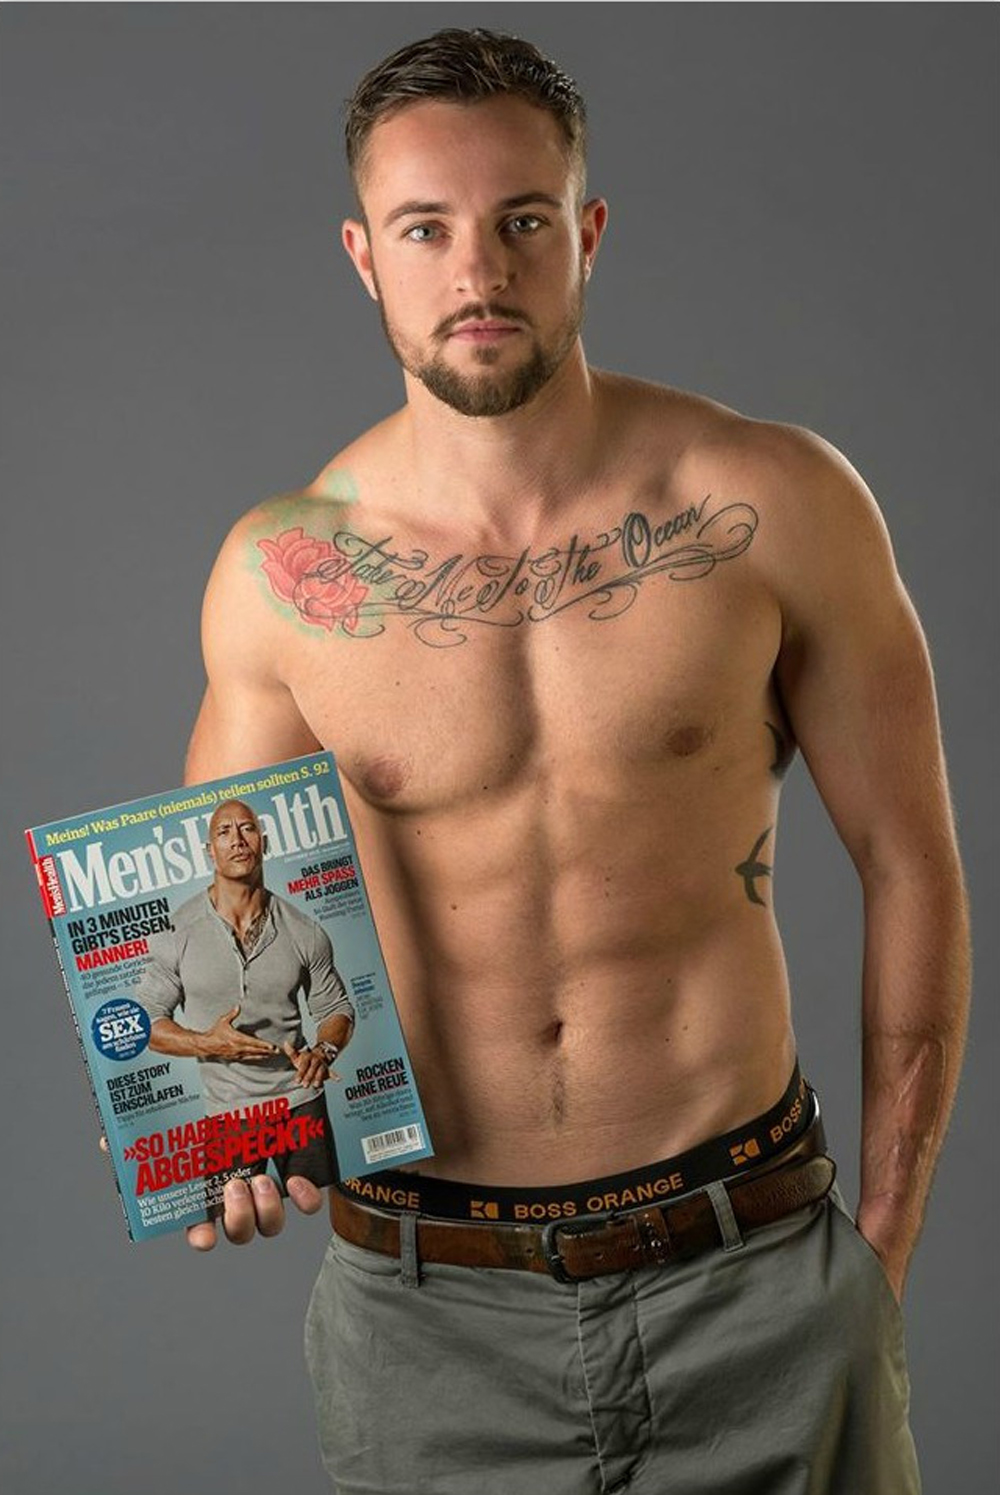 Meet the First Trans Man on the Cover of Men's Health in Europe